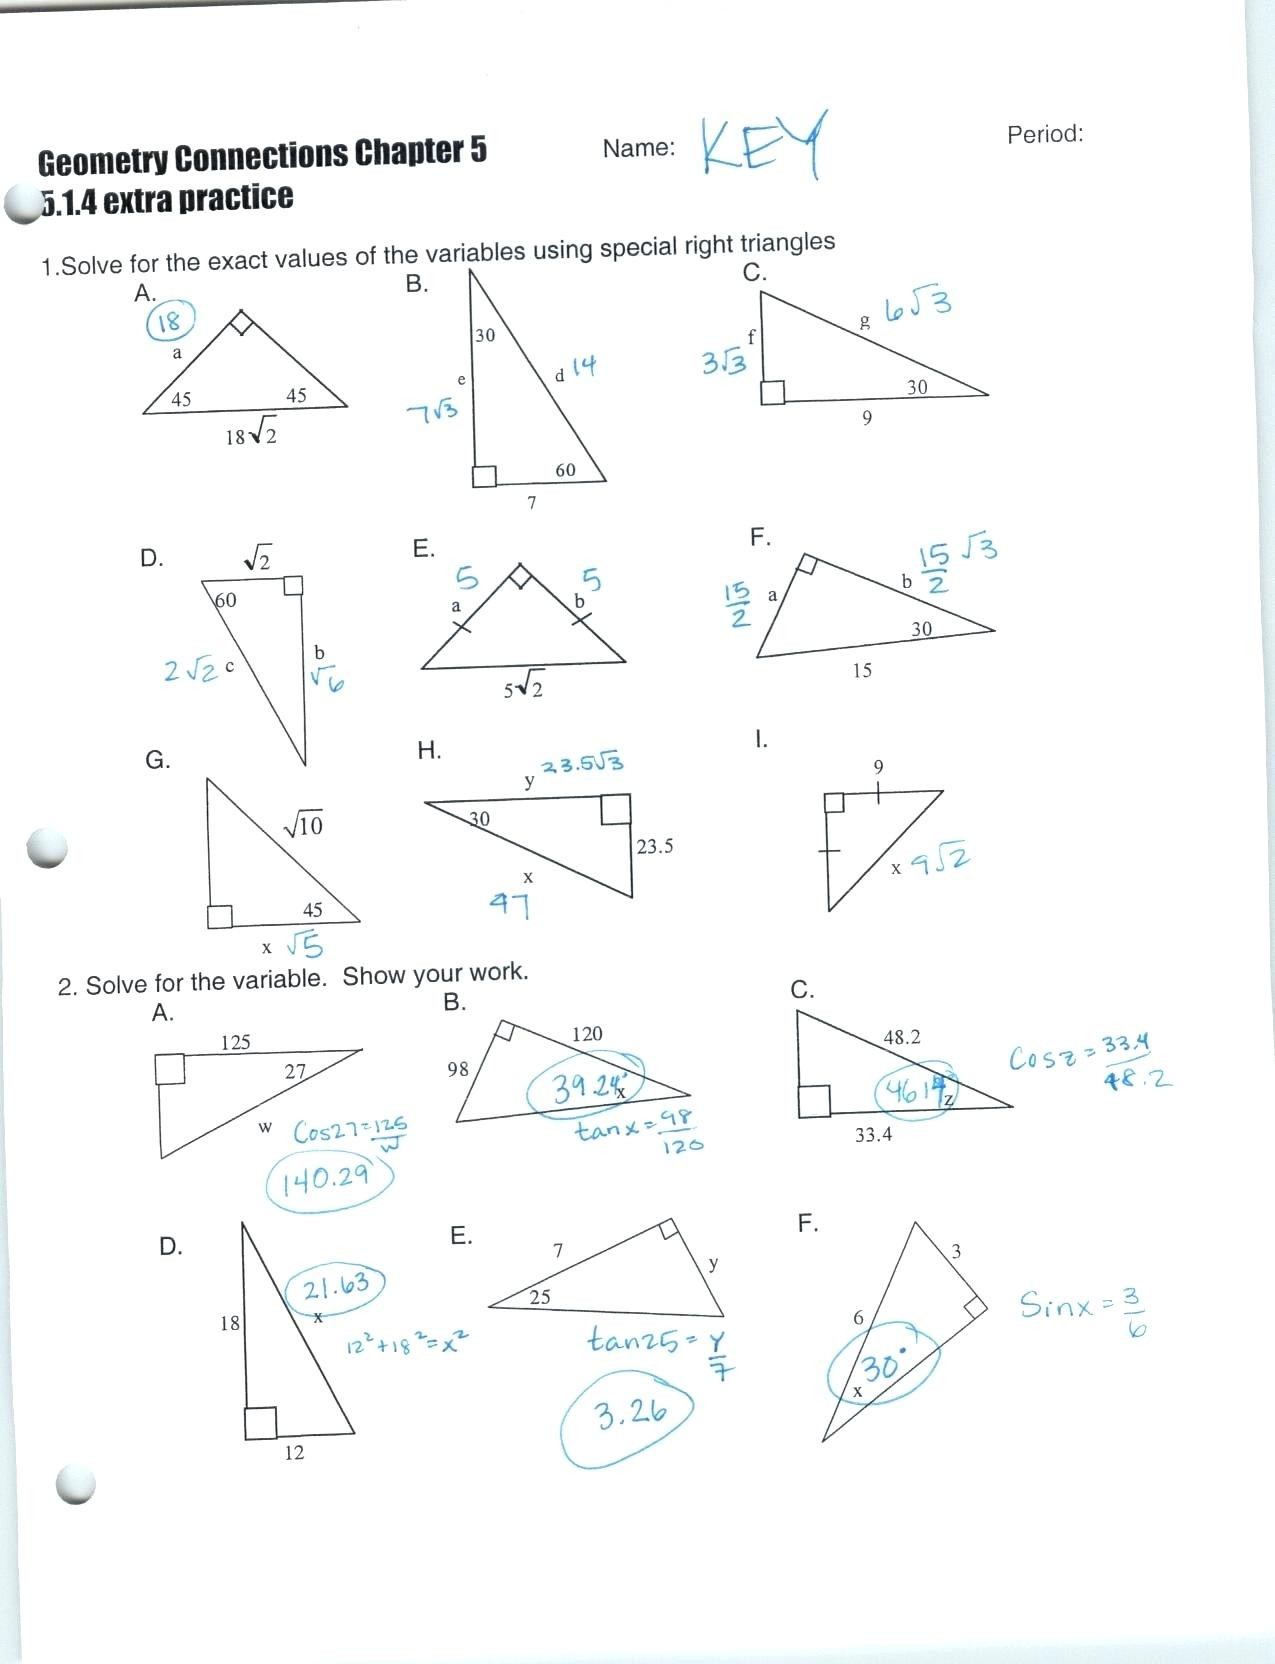 Trigonometric Ratios Worksheet Answers Inverse Trig Functions Worksheet with Answers Nidecmege